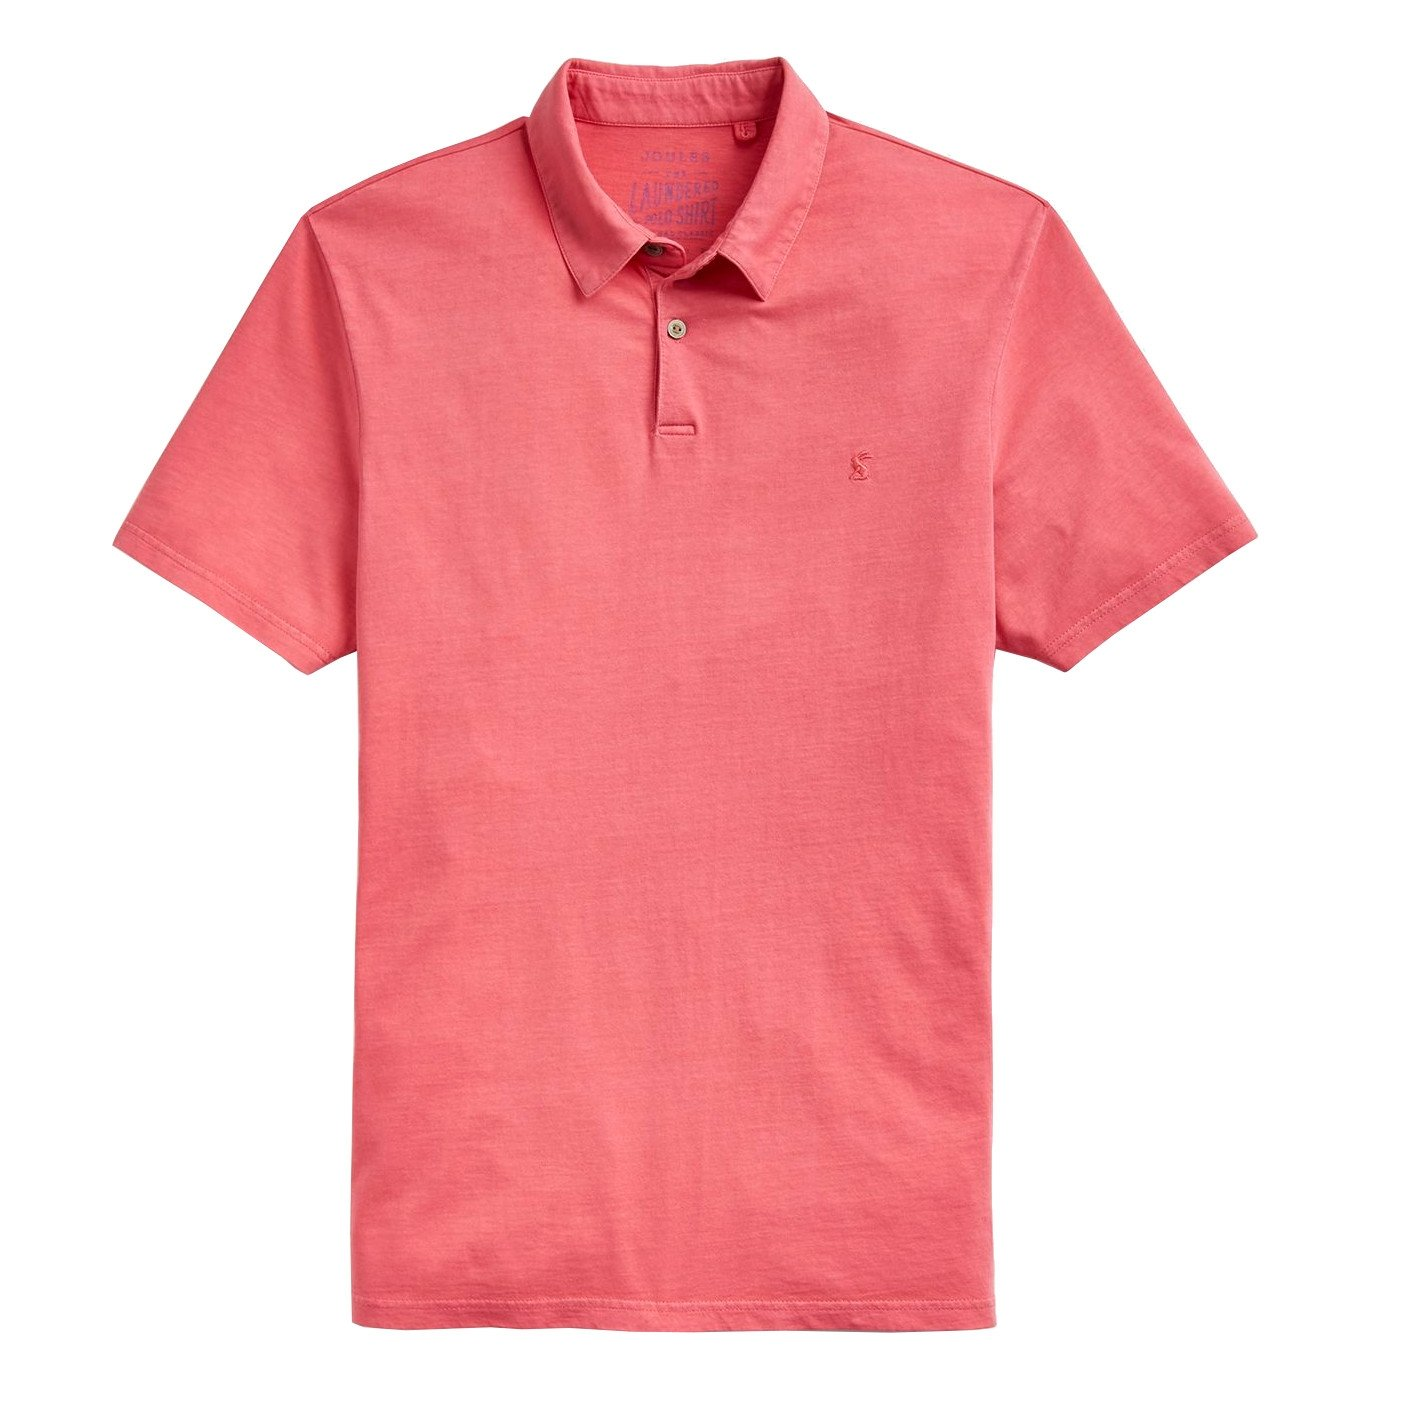 9ff99d07 Joules Men's Shirts at naylors